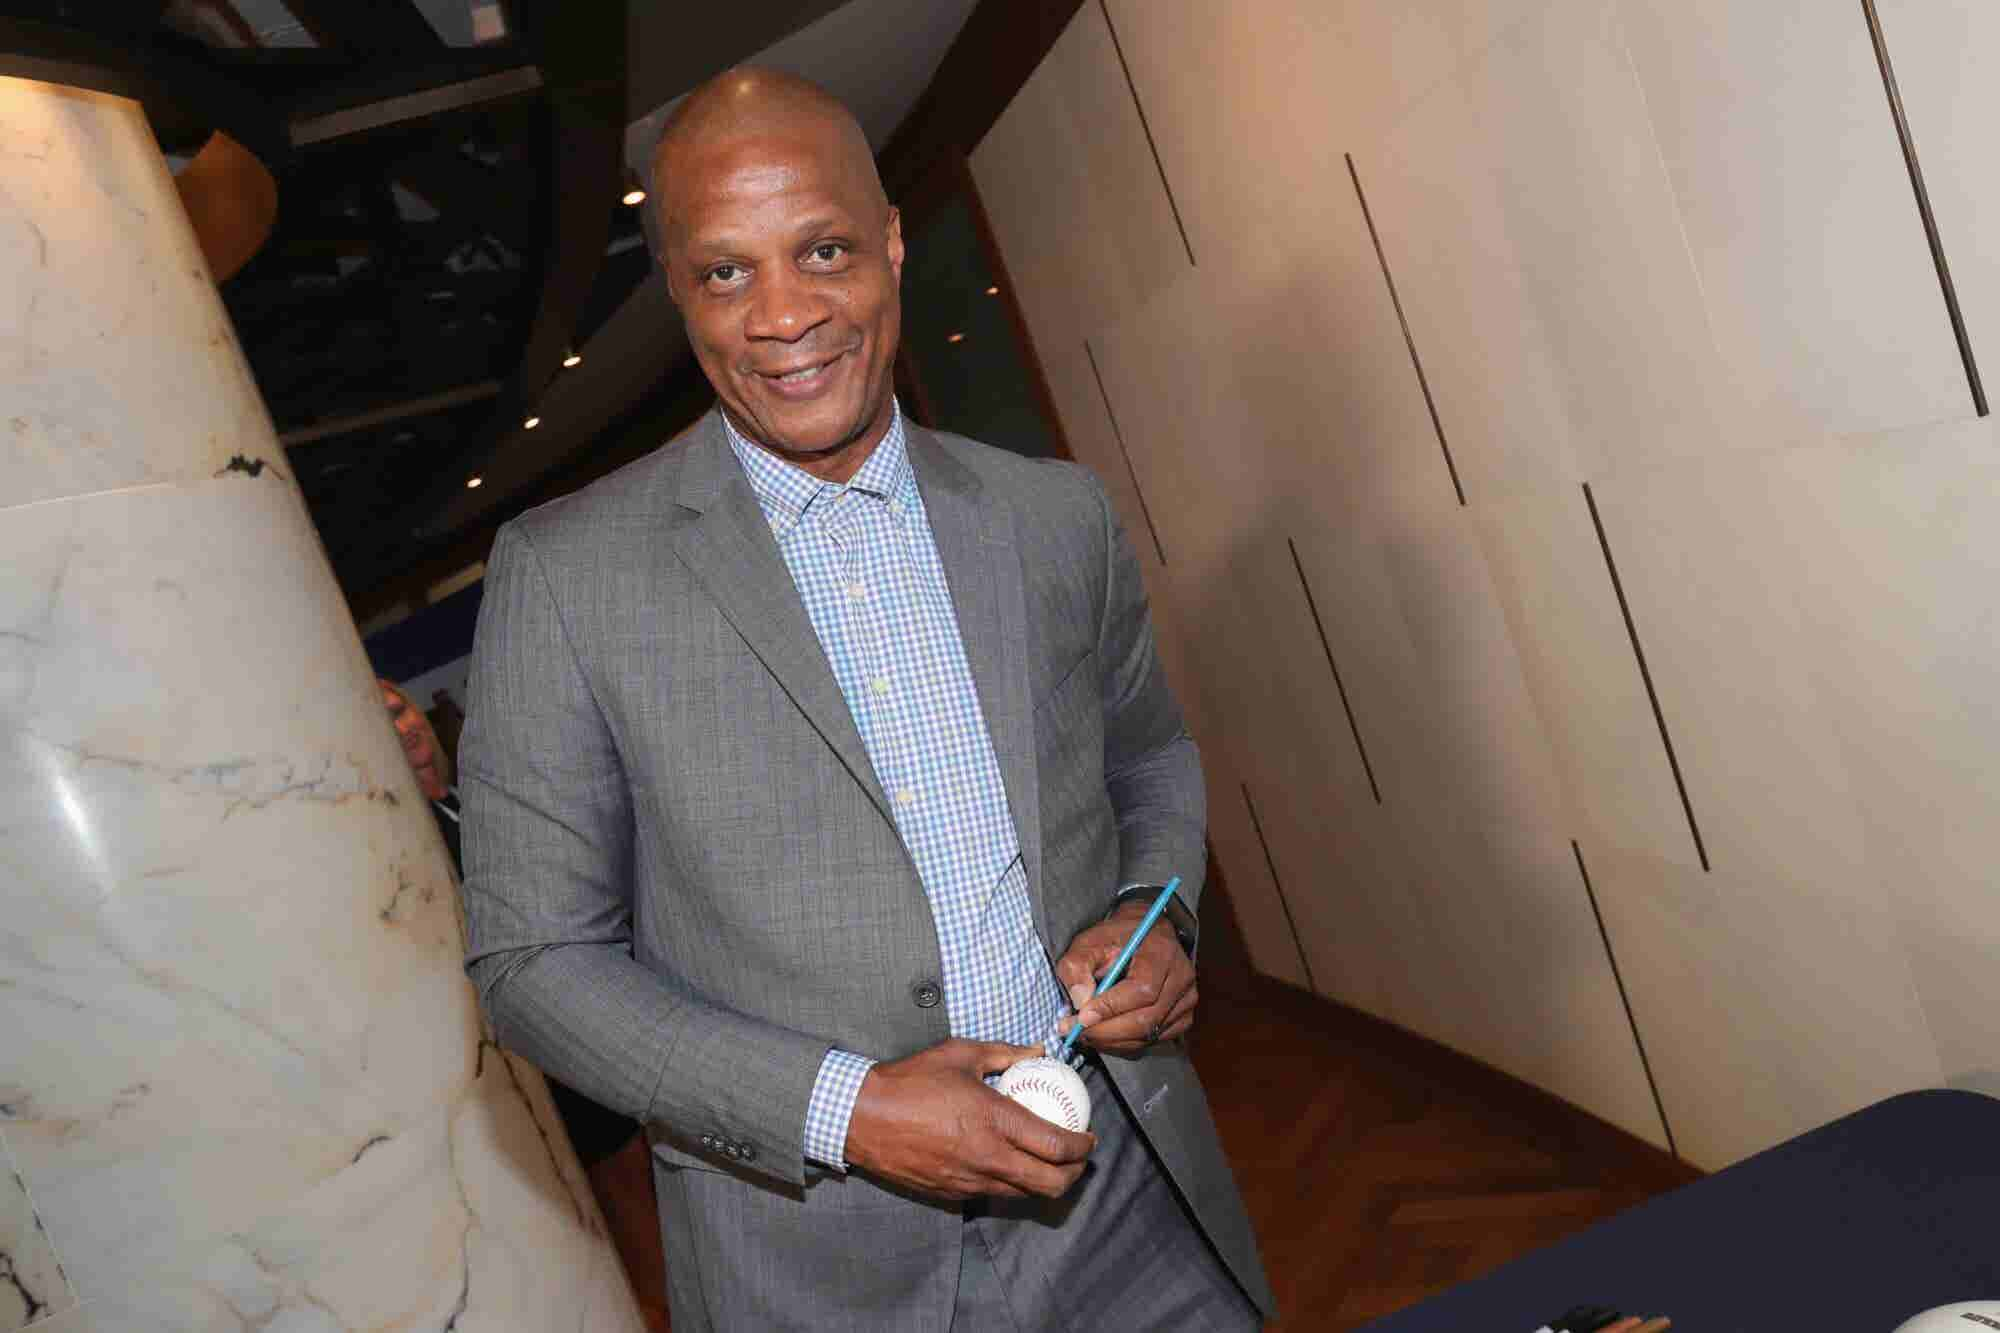 Darryl Strawberry Sees No Difference Between Medical Cannabis and Opio...